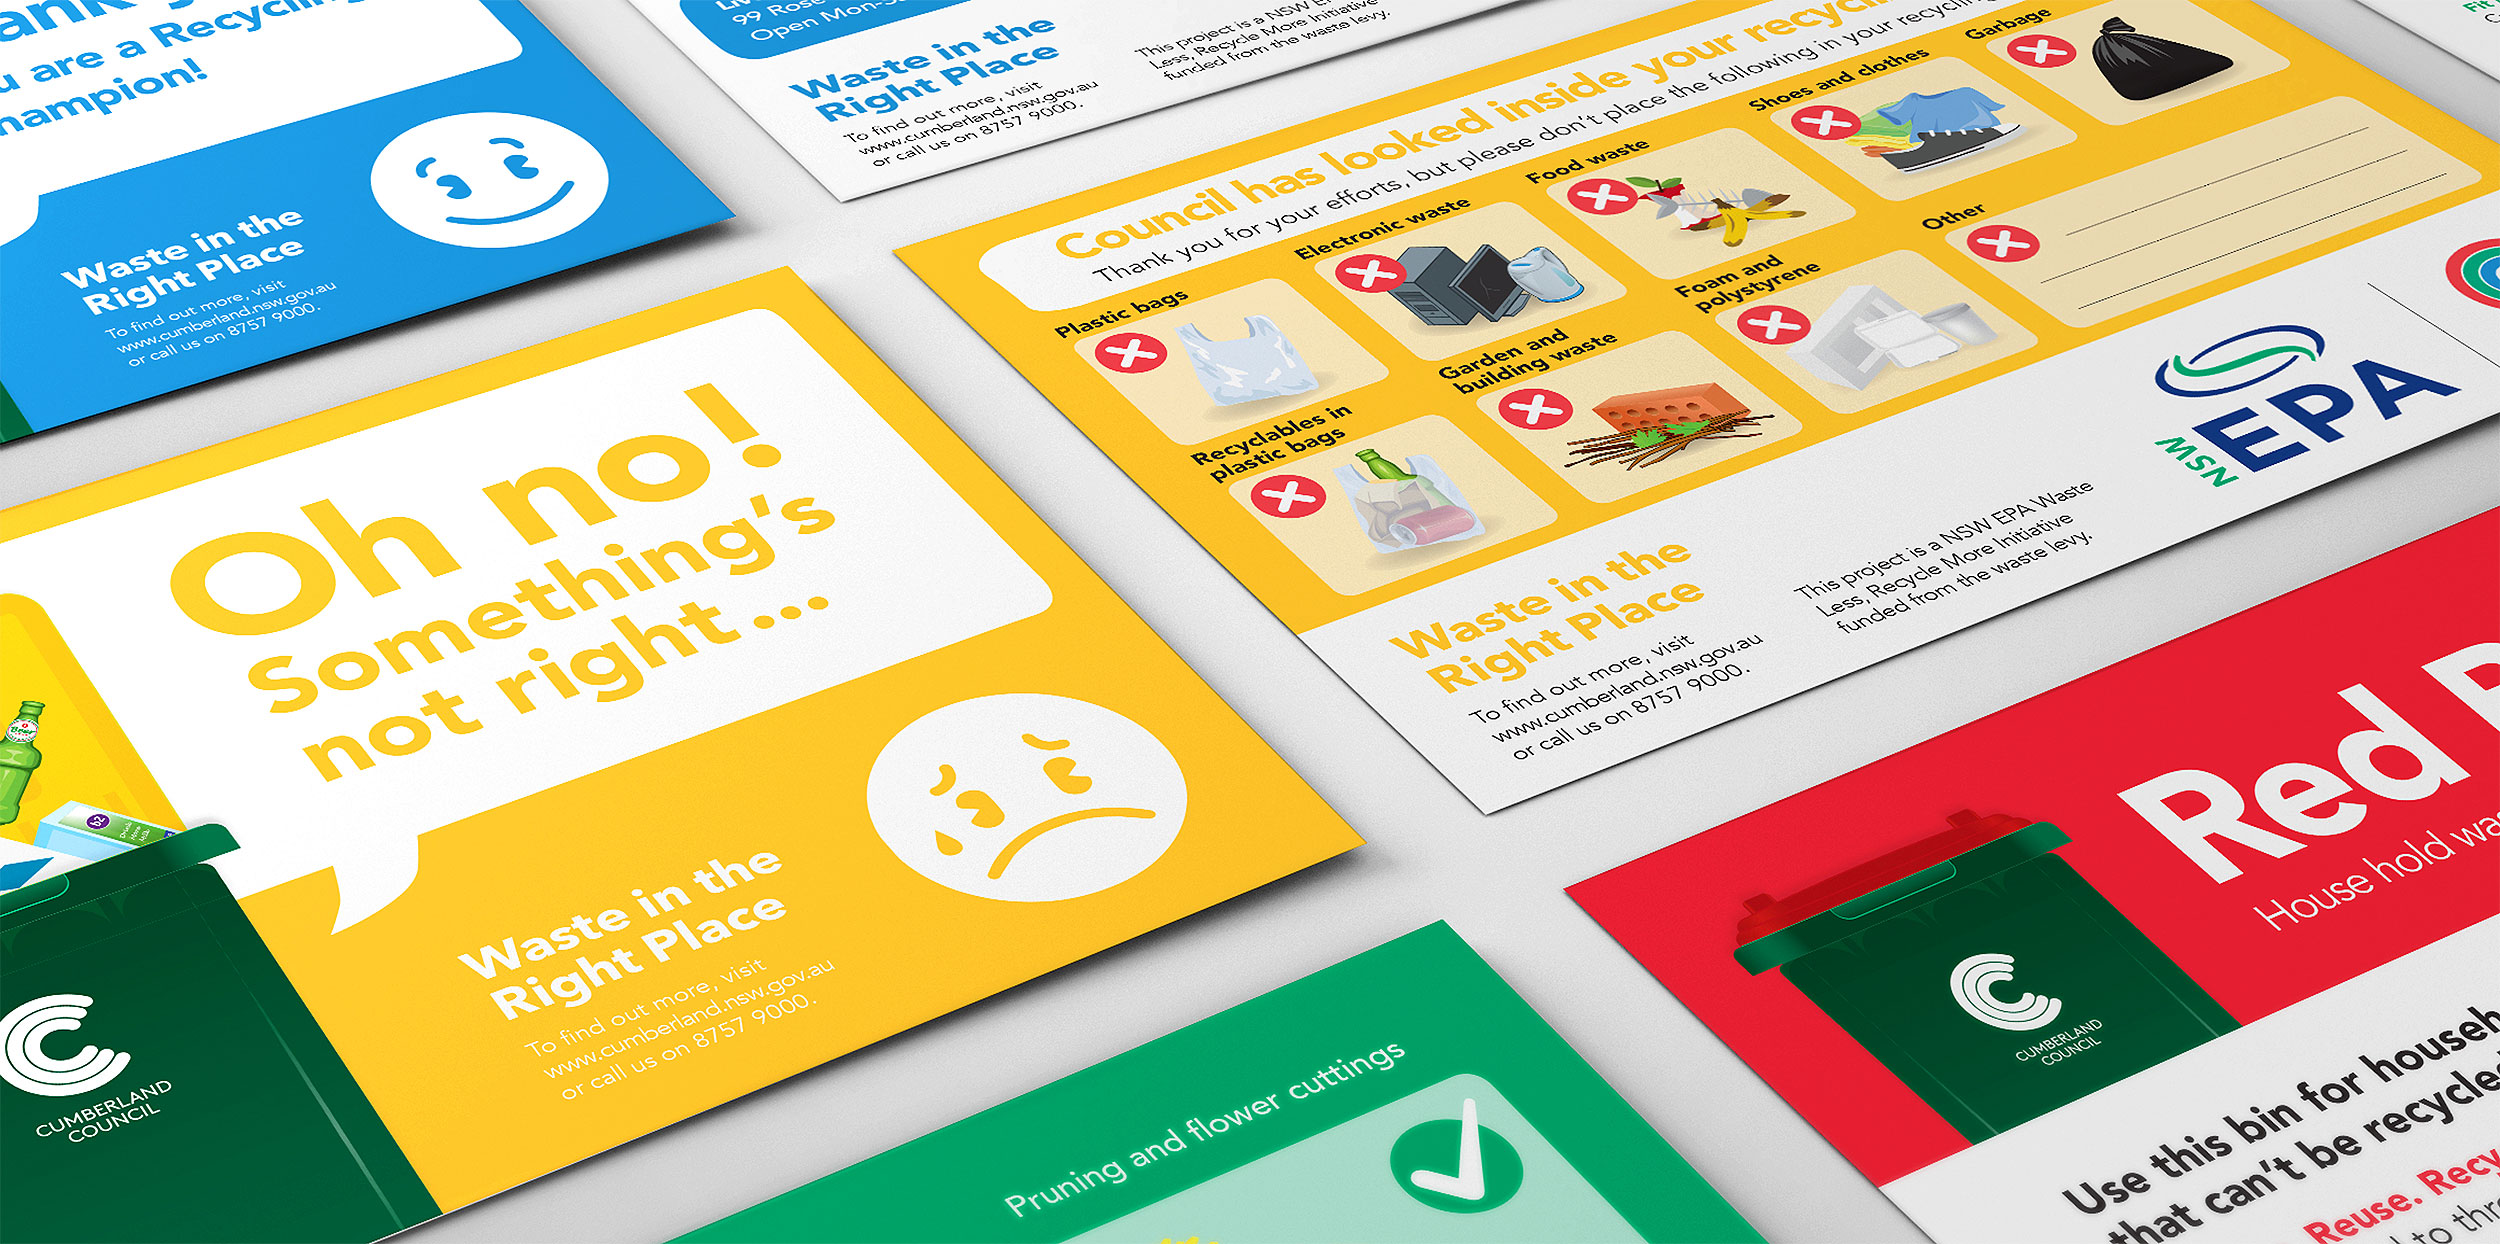 Handle-Branding-Cumberland-Council-NSW-Government-Waste-Education-Resources-Design_15.jpg